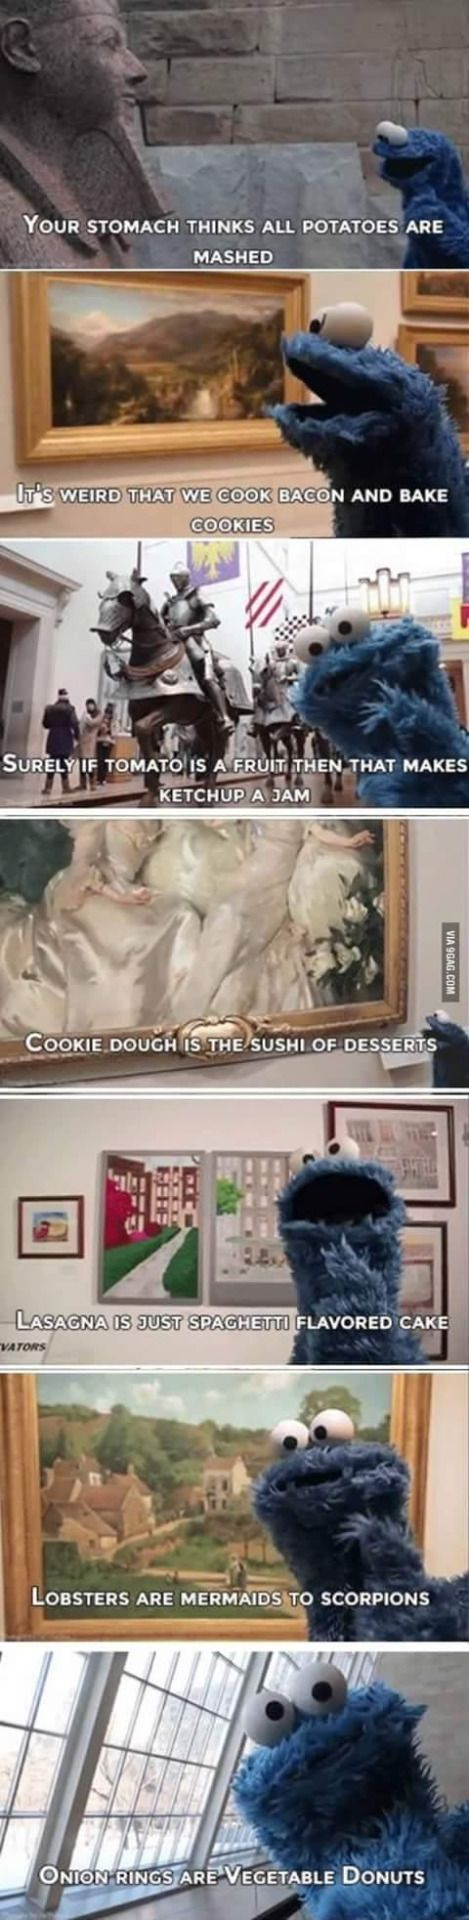 Some shower thoughts from the cookie monster. http://ift.tt/2jtJiuf #lol #funny #rofl #memes #lmao #hilarious #cute